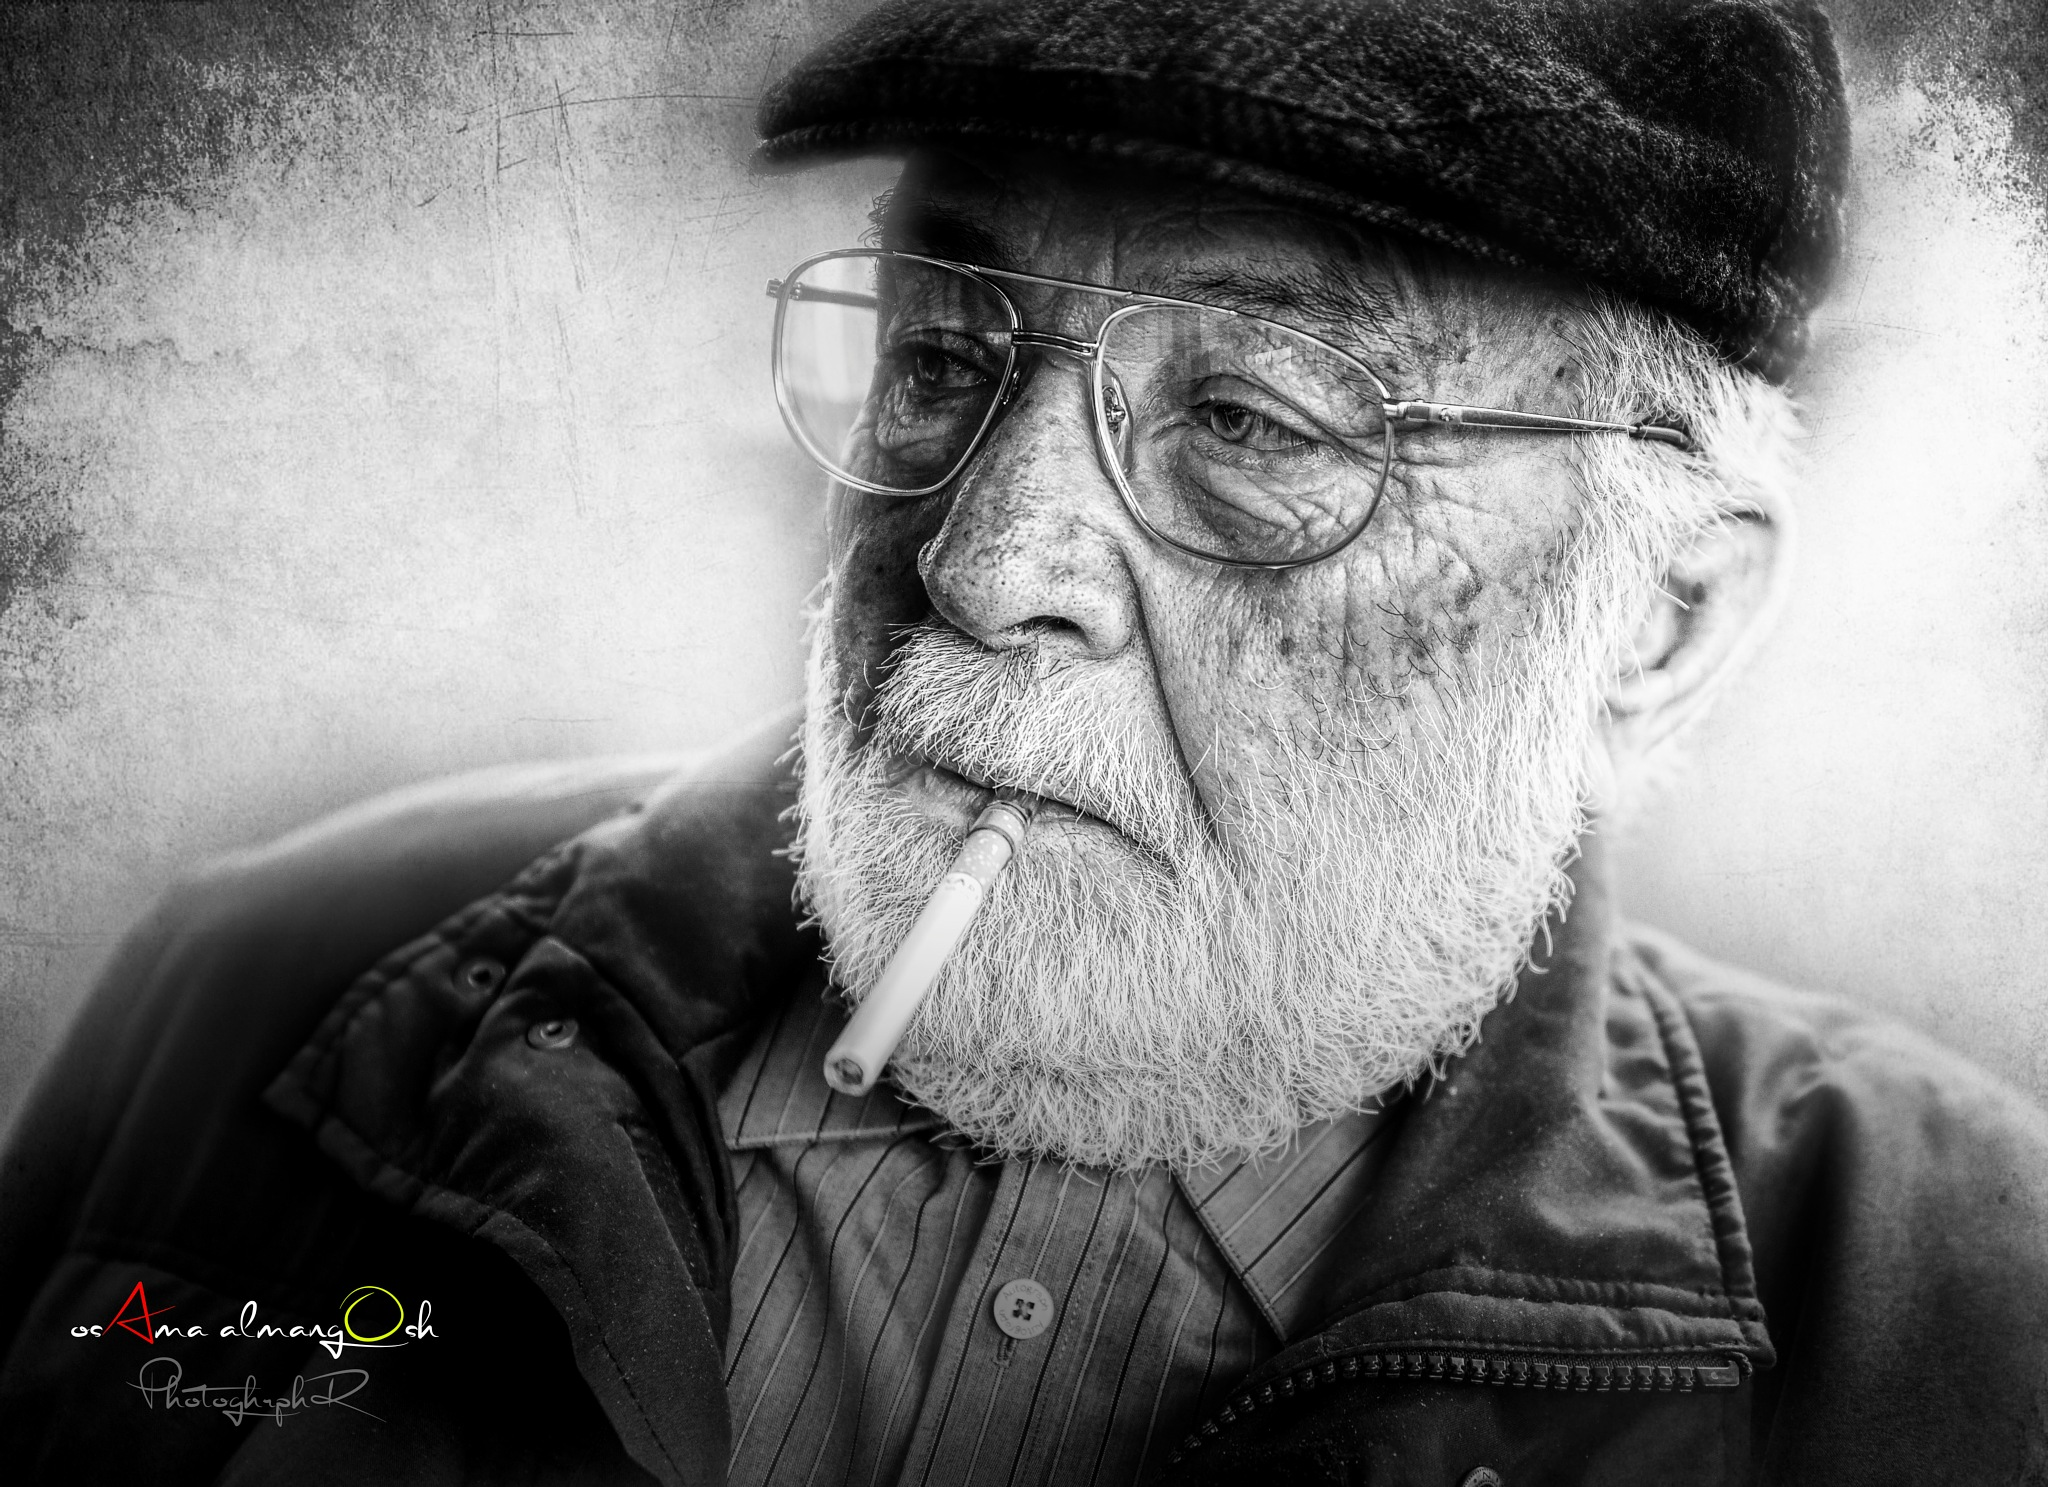 black and white portrait by osama almngush